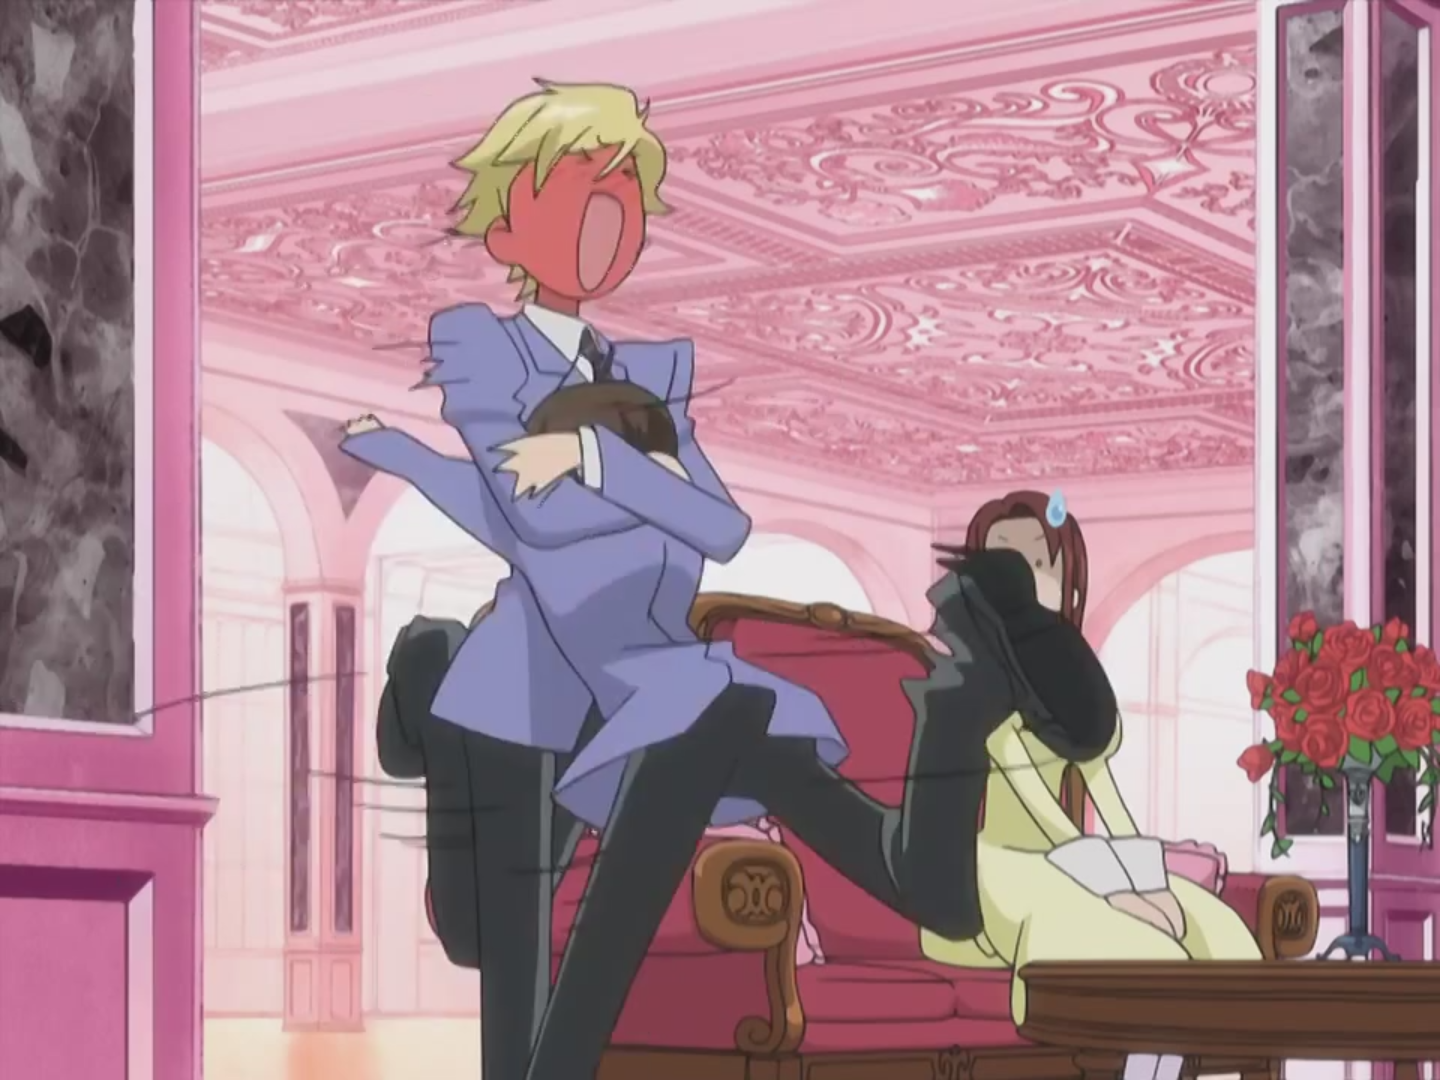 ouran episodes Looking for episode specific information on ouran koukou host club (ouran high school host club) then you should check out myanimelist haruhi fujioka is a bright scholarship candidate with no rank or title to speak of—a rare species at ouran high school, an elite academy for students of high pedigree.